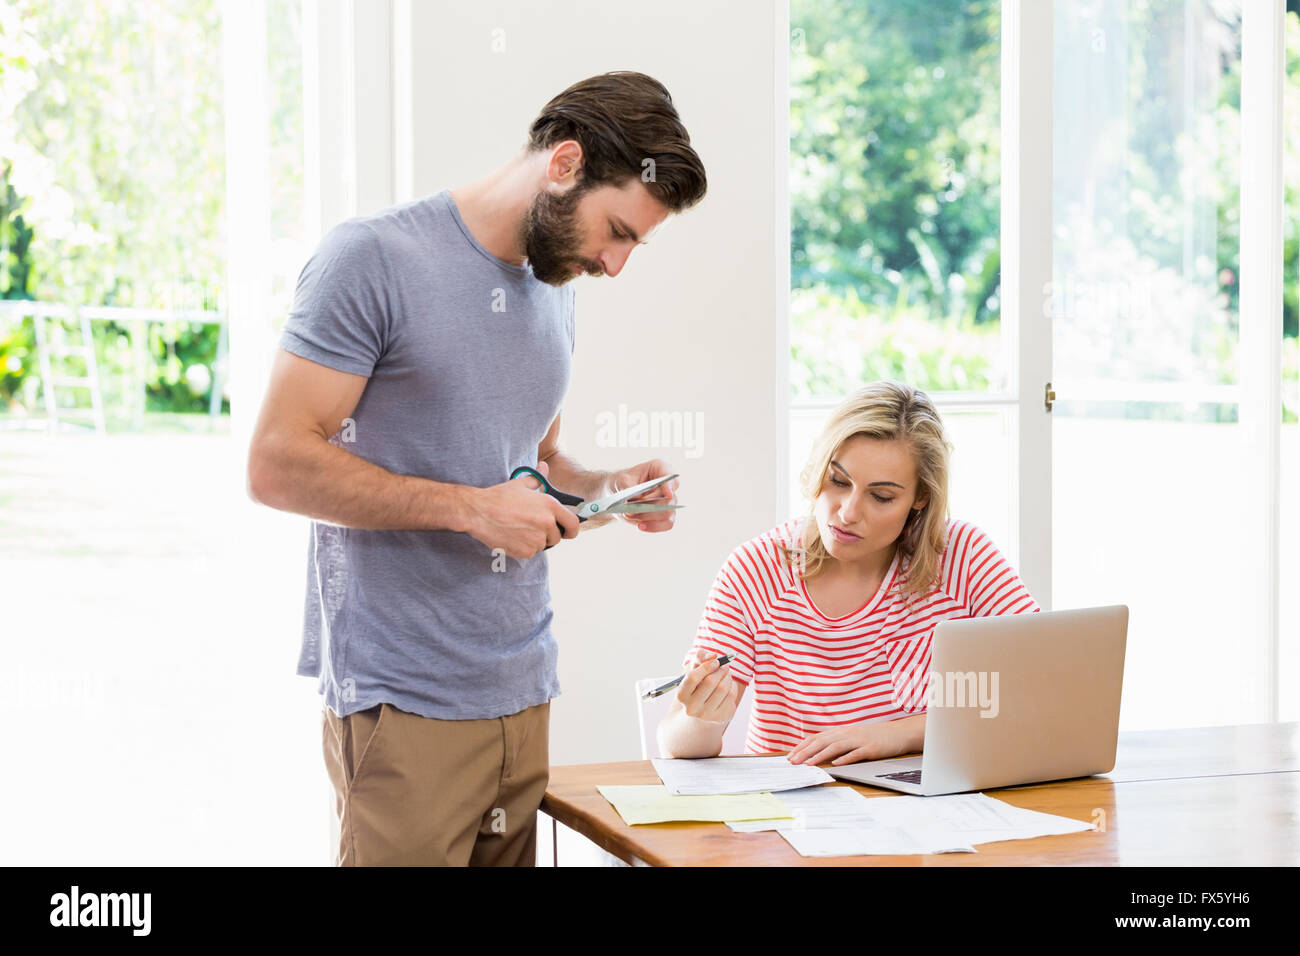 Man cutting a credit card while tense woman with bills sitting at table - Stock Image